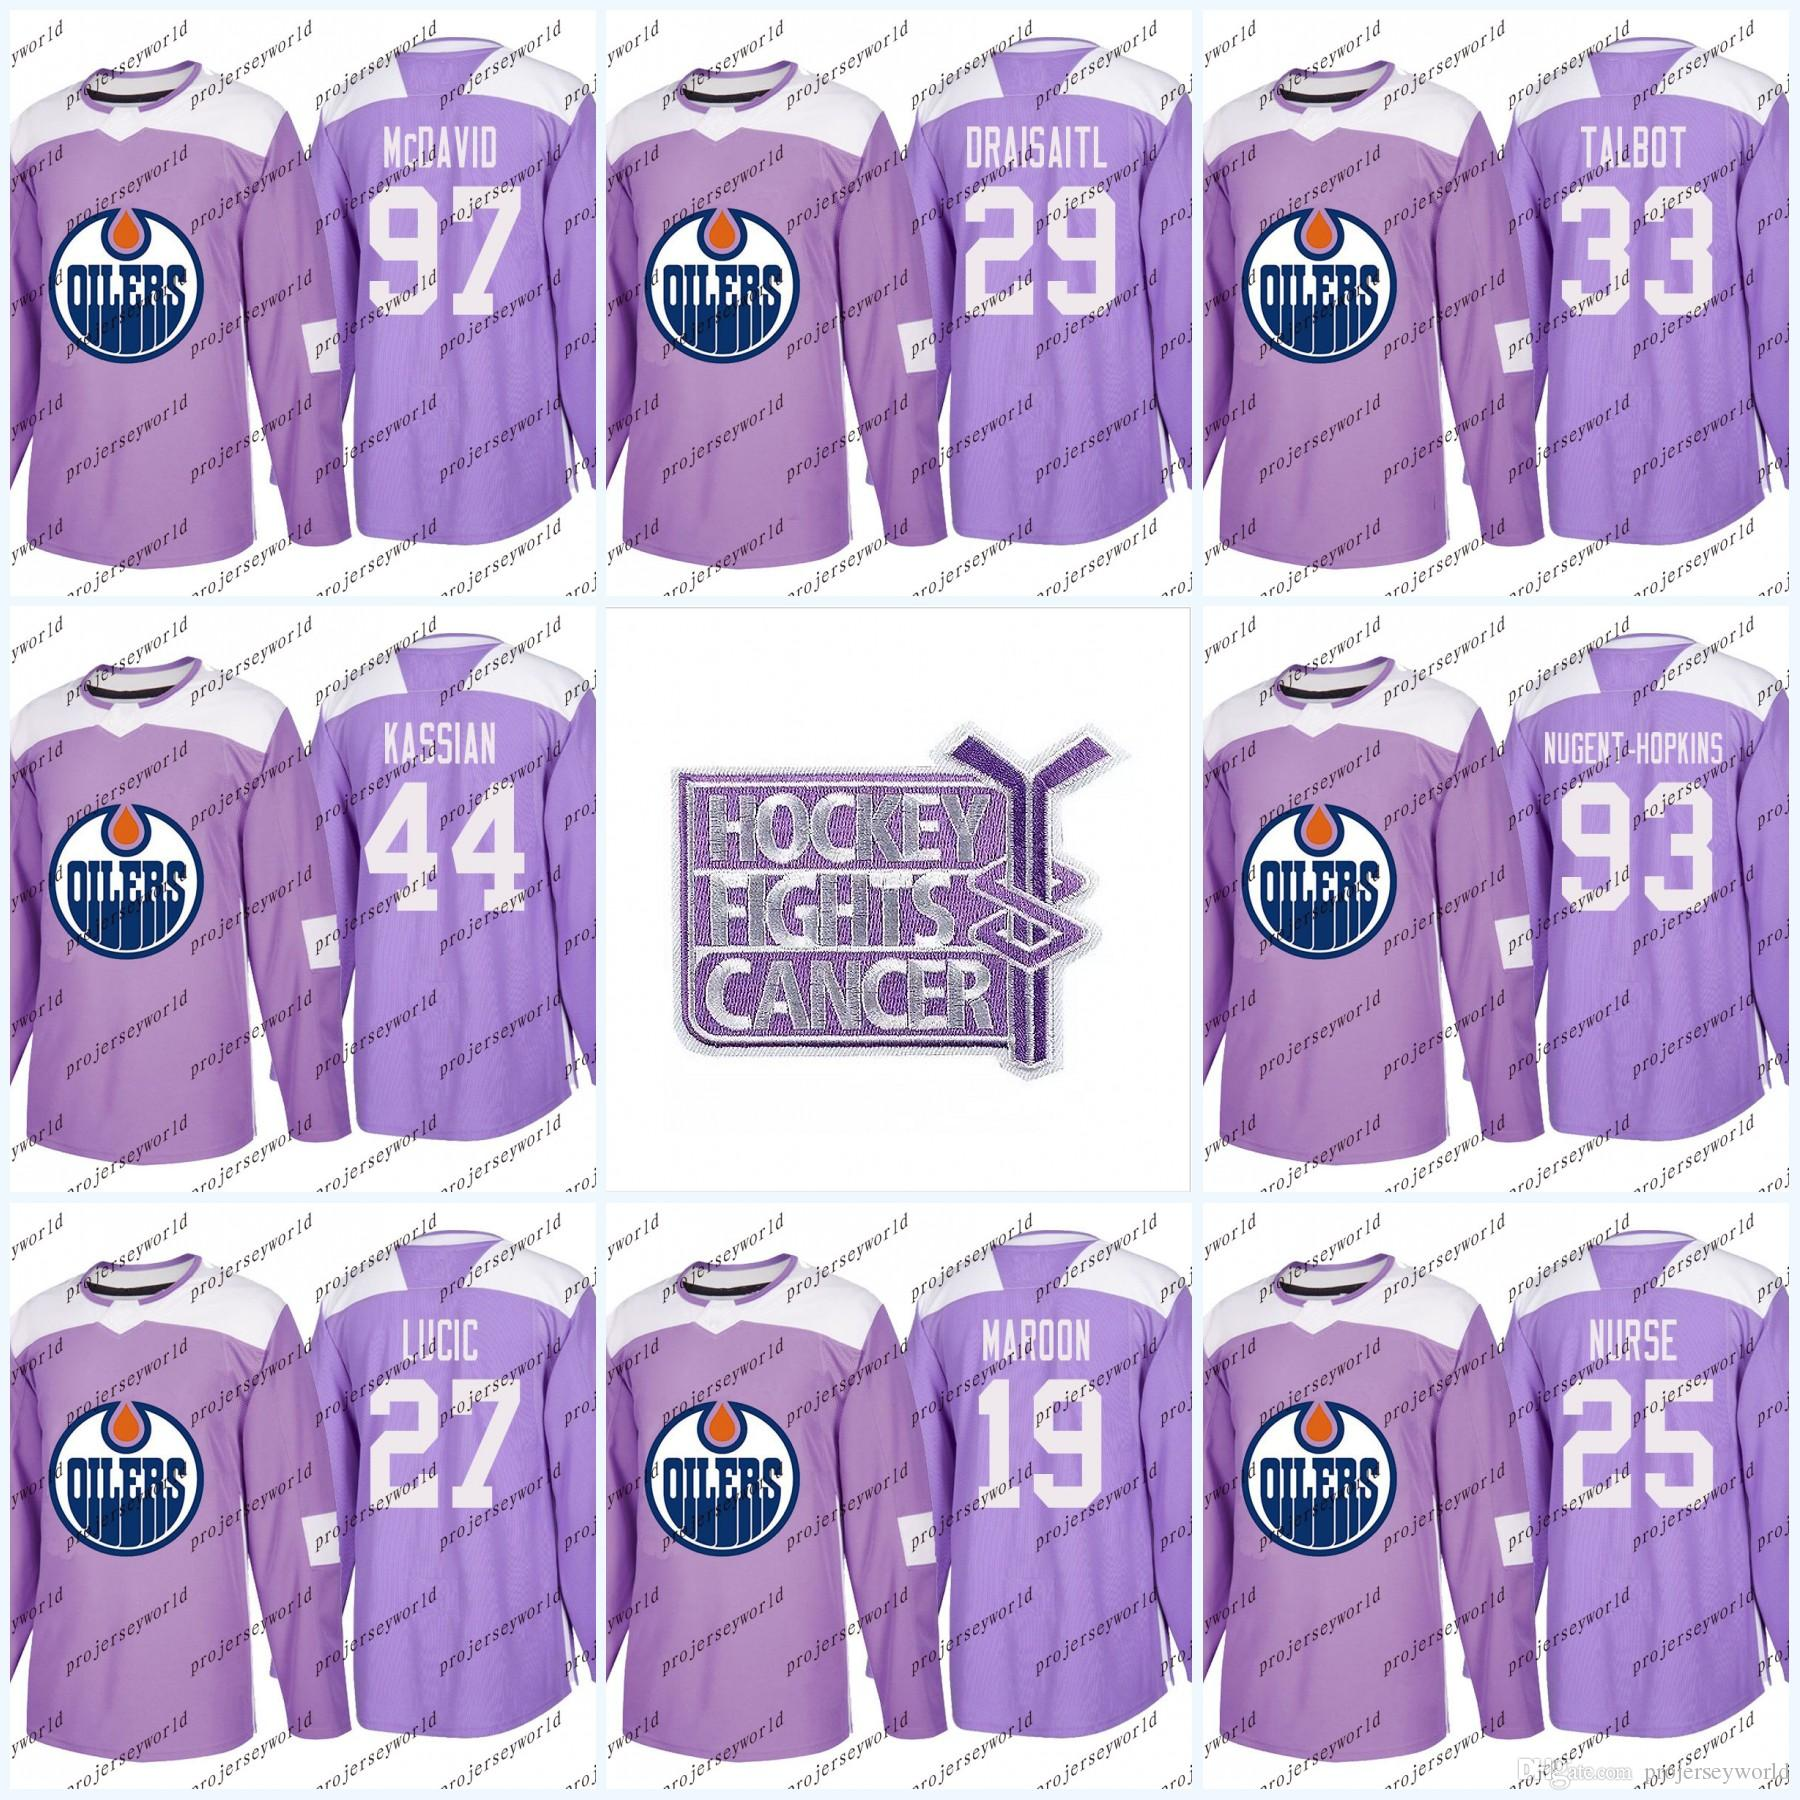 arrives d0242 41c62 Youth 44 Zack Kassian Purple Fights Cancer Practice Edmonton Oilers 97  Connor McDavid 33 Cam Talbot 93 Ryan Nugent-Hopkins Hockey Jerseys